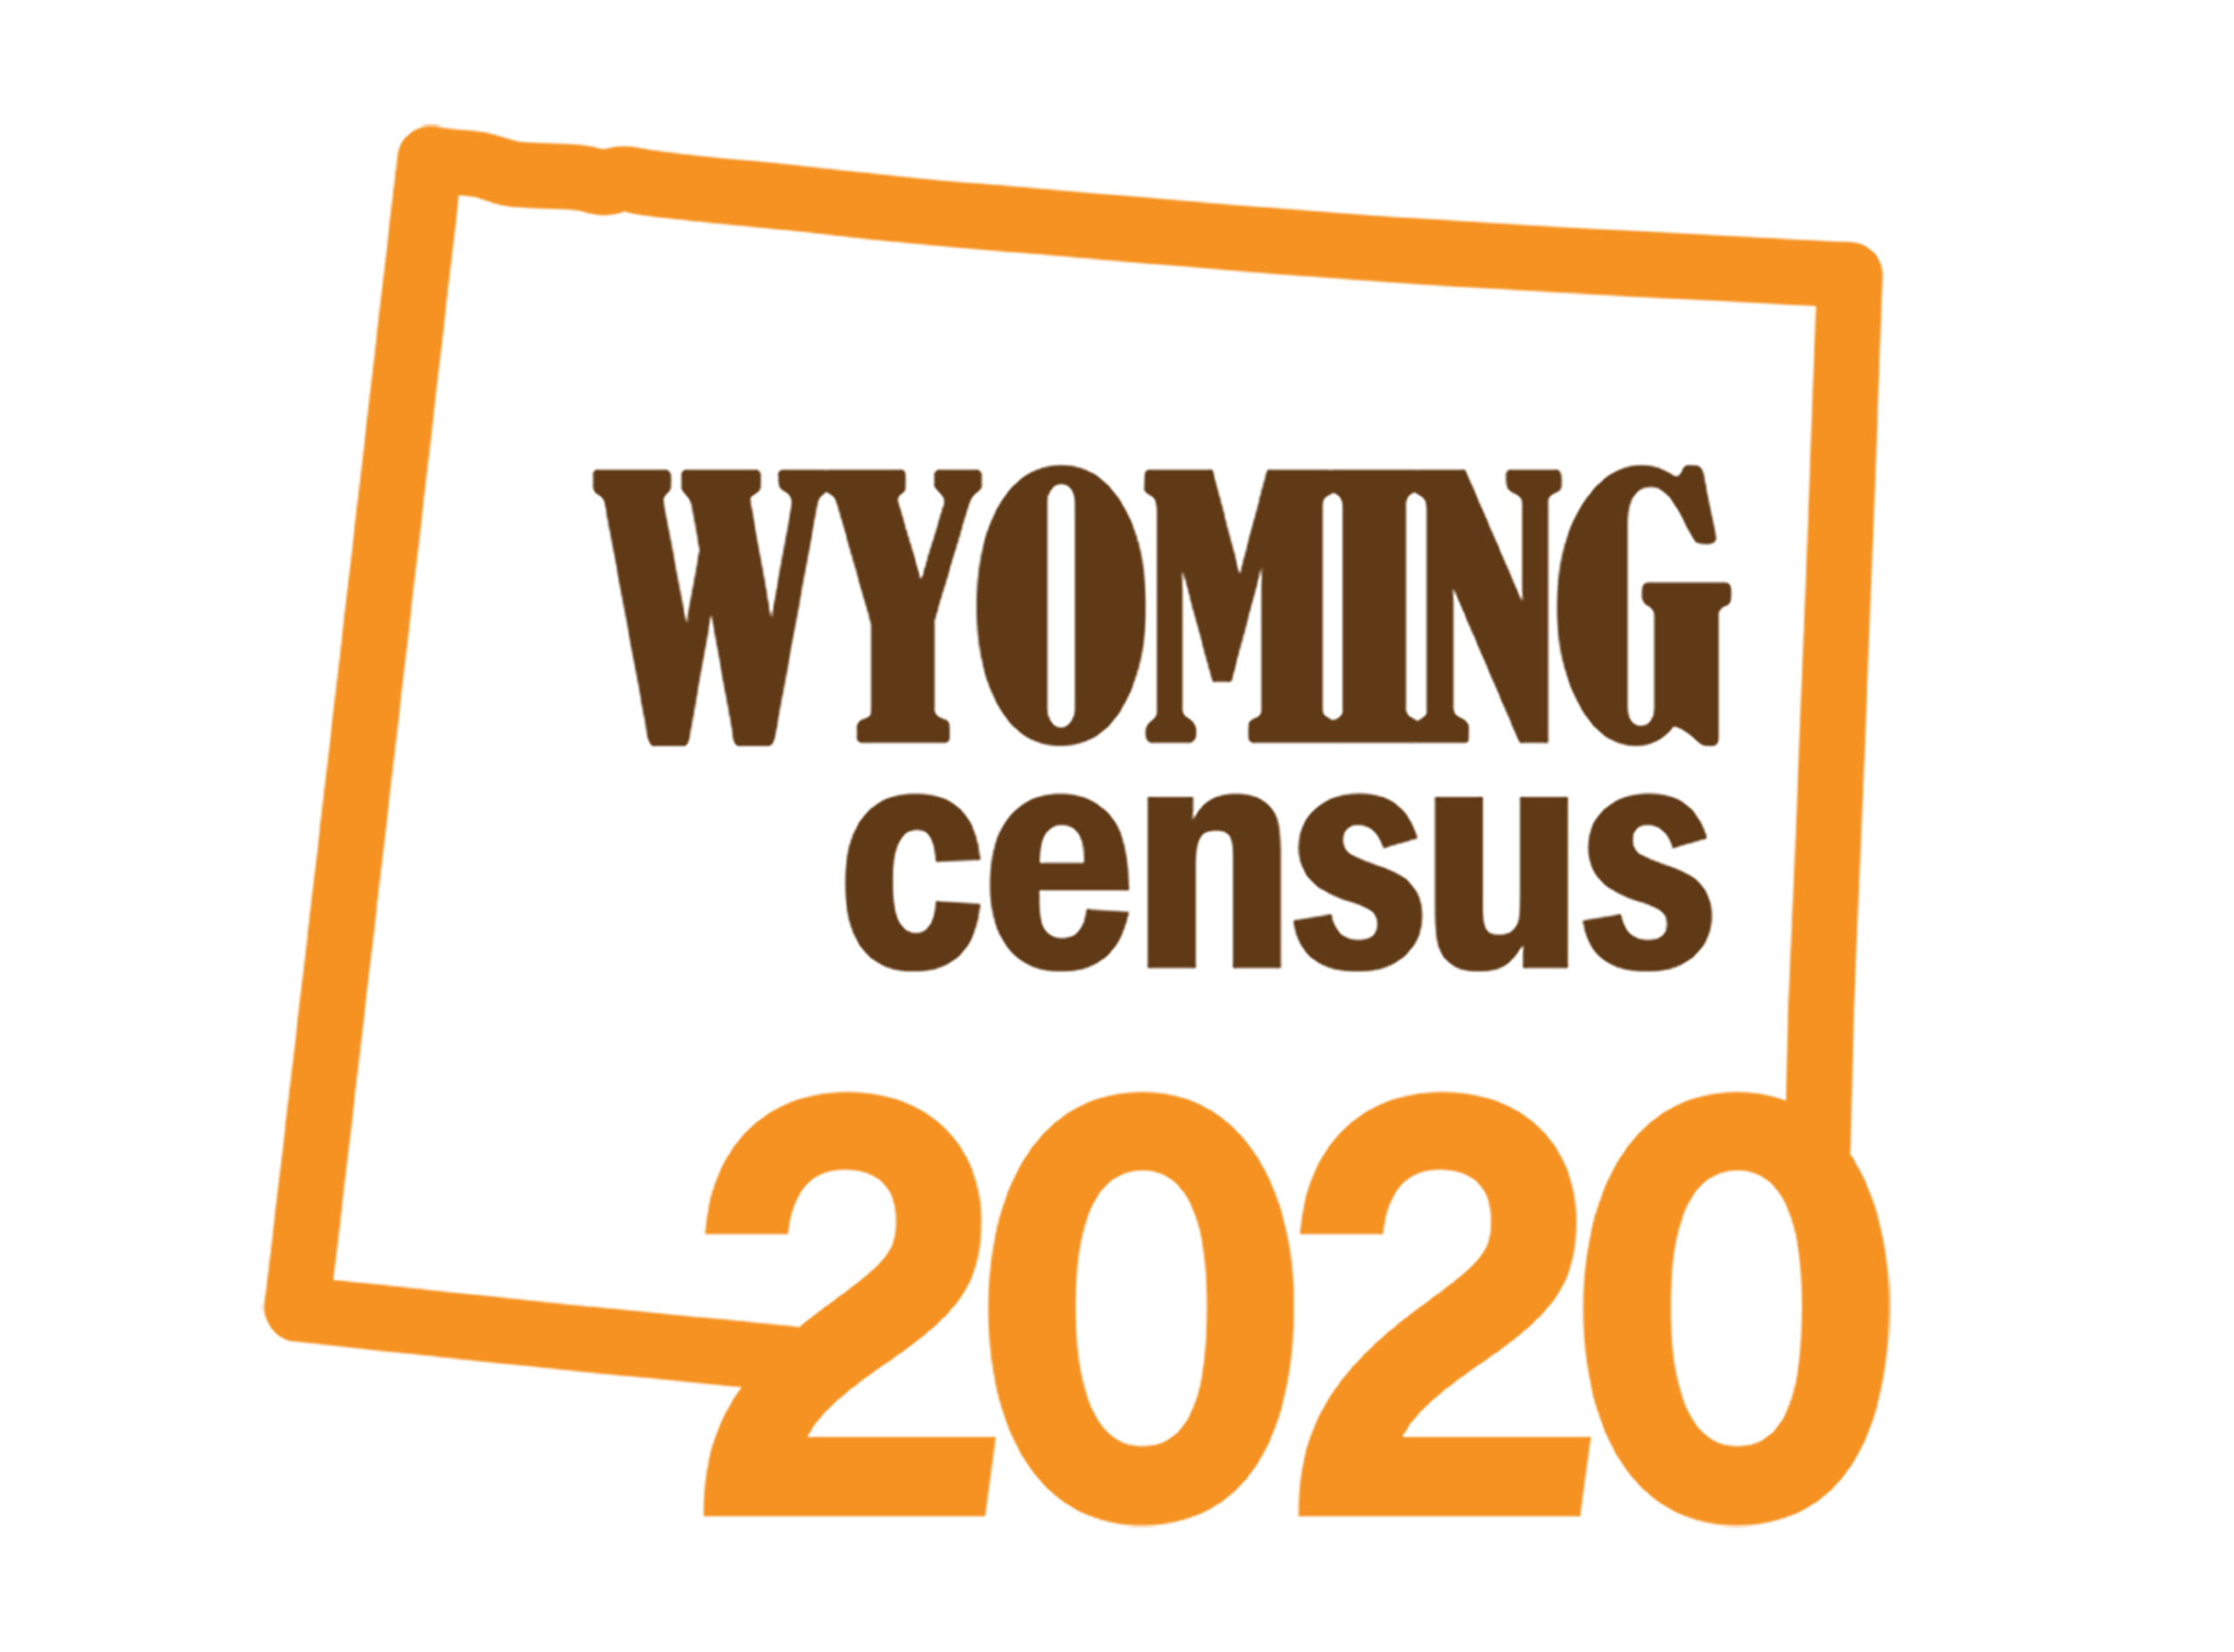 Over 90% of Households Have Been Counted in the 2020 Census